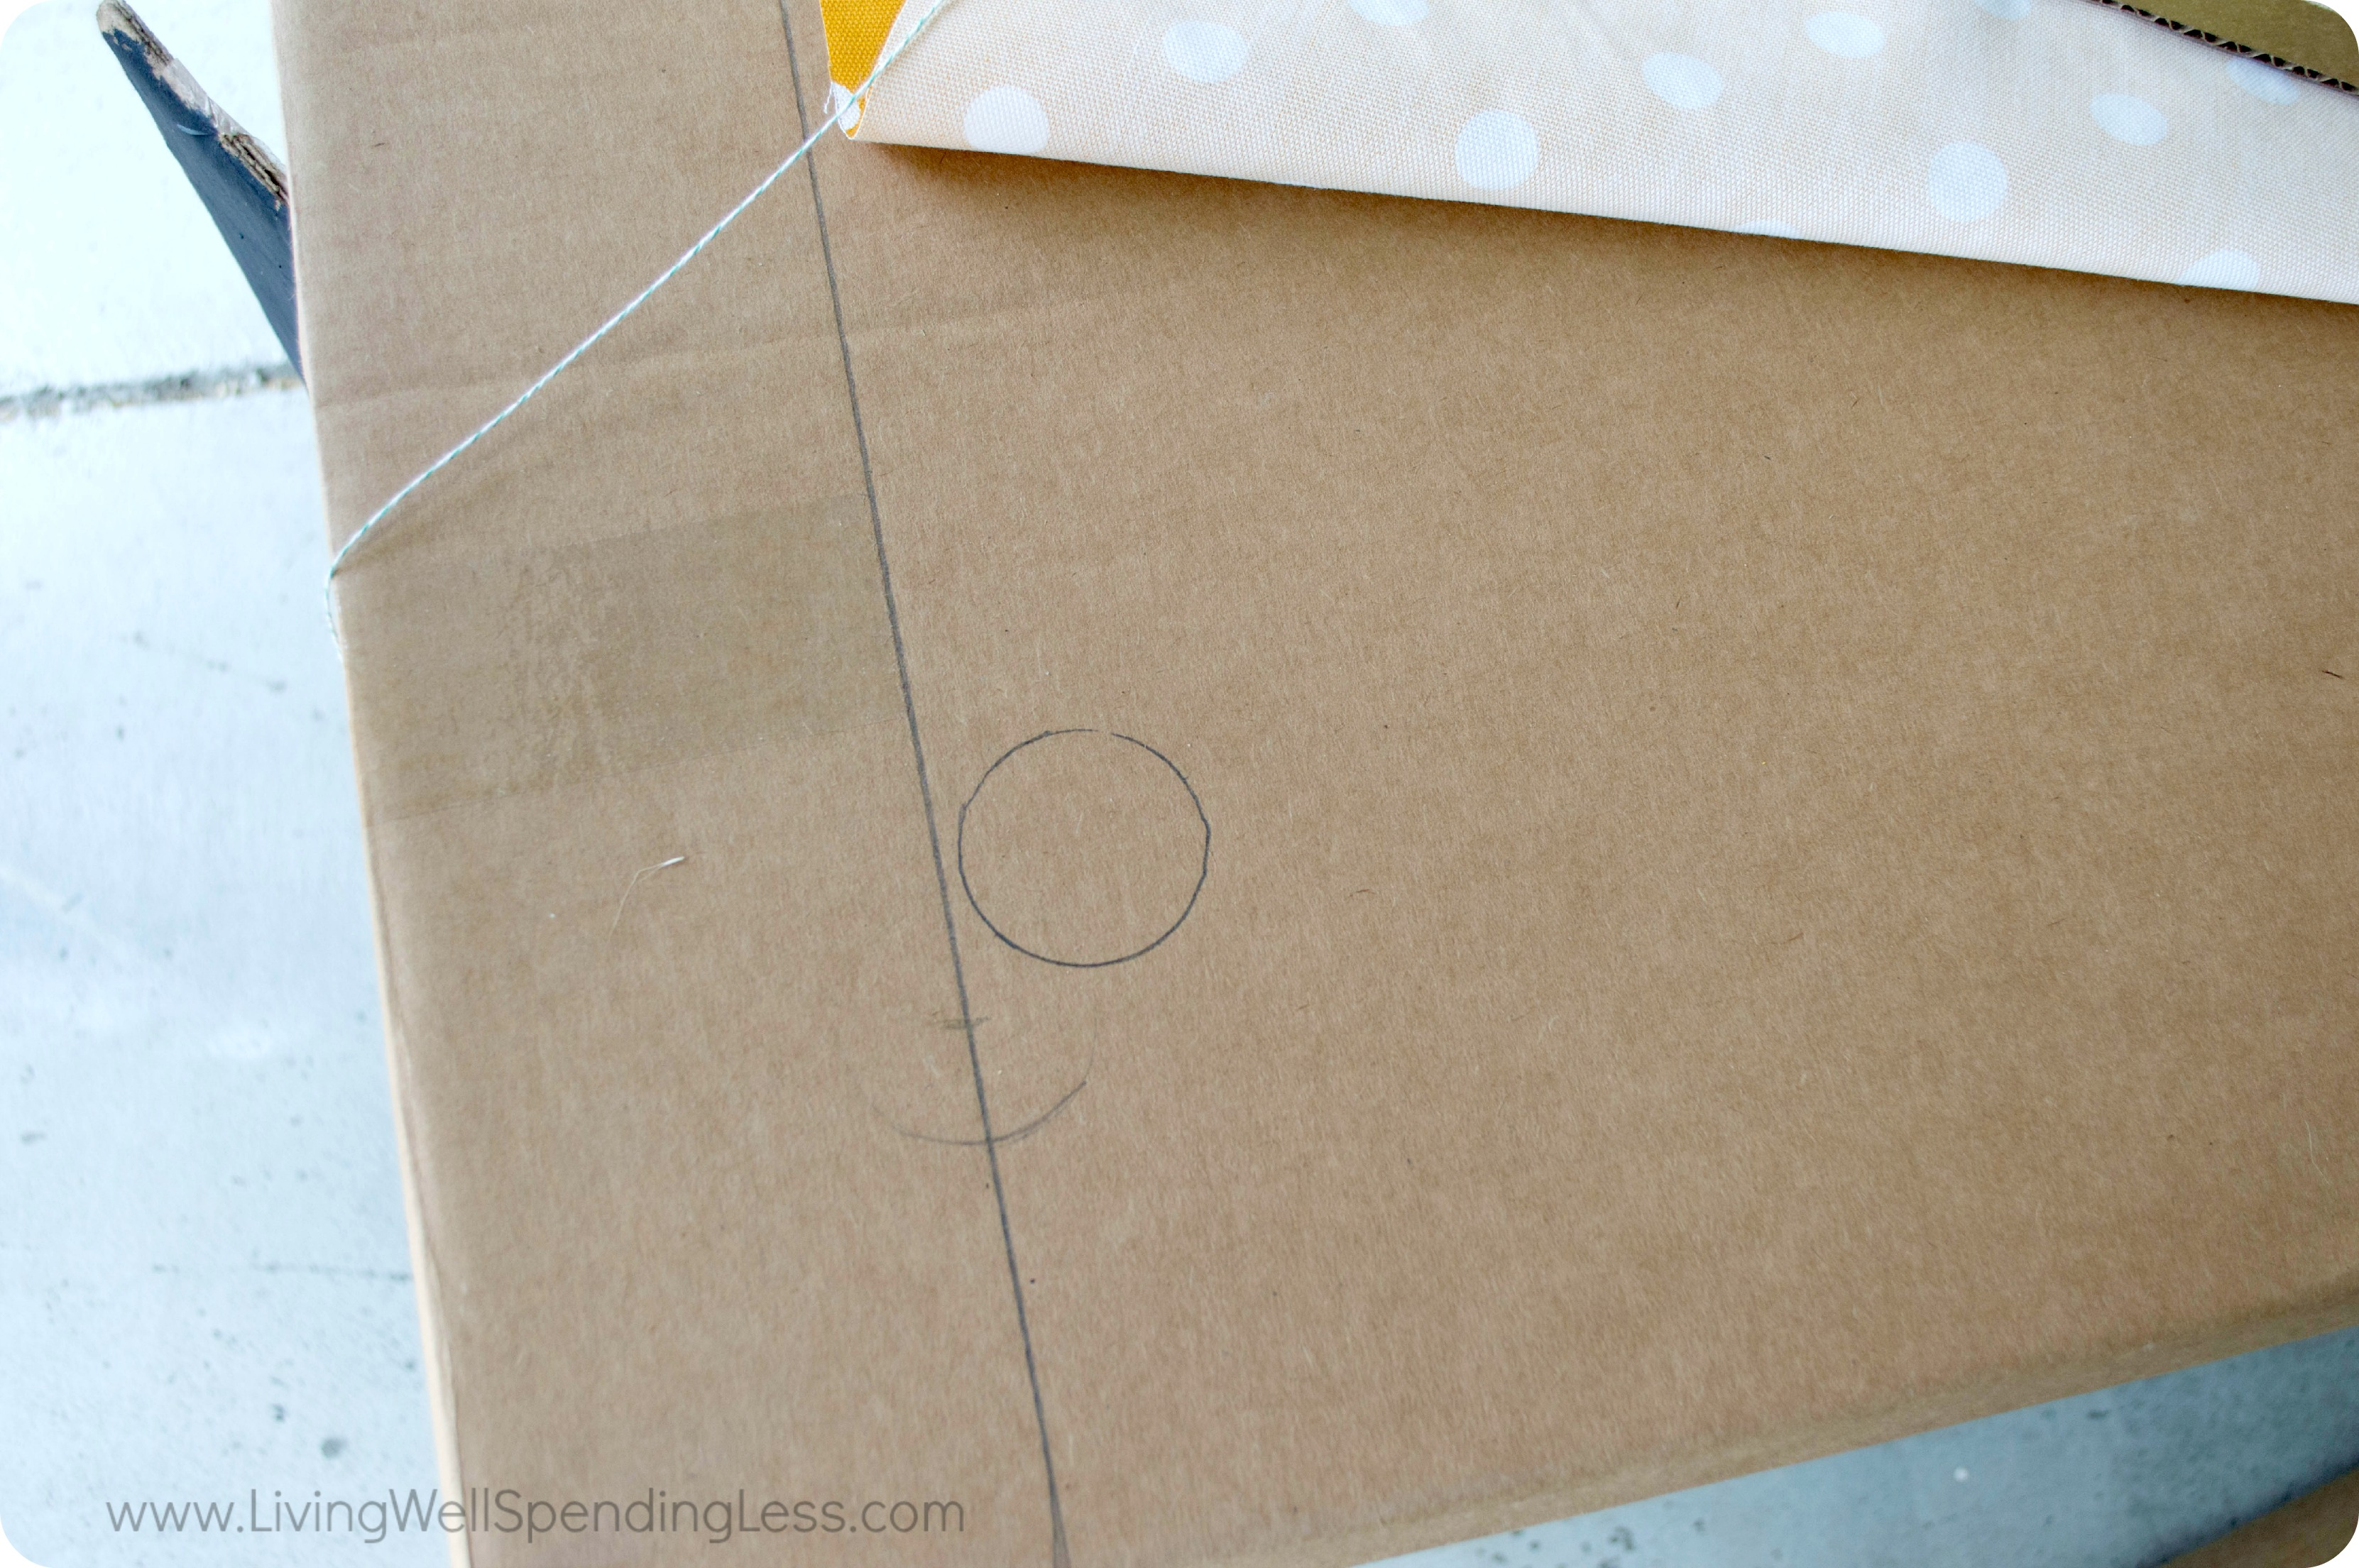 A larger and thinner piece of cardboard will be used for the slushie stand counter